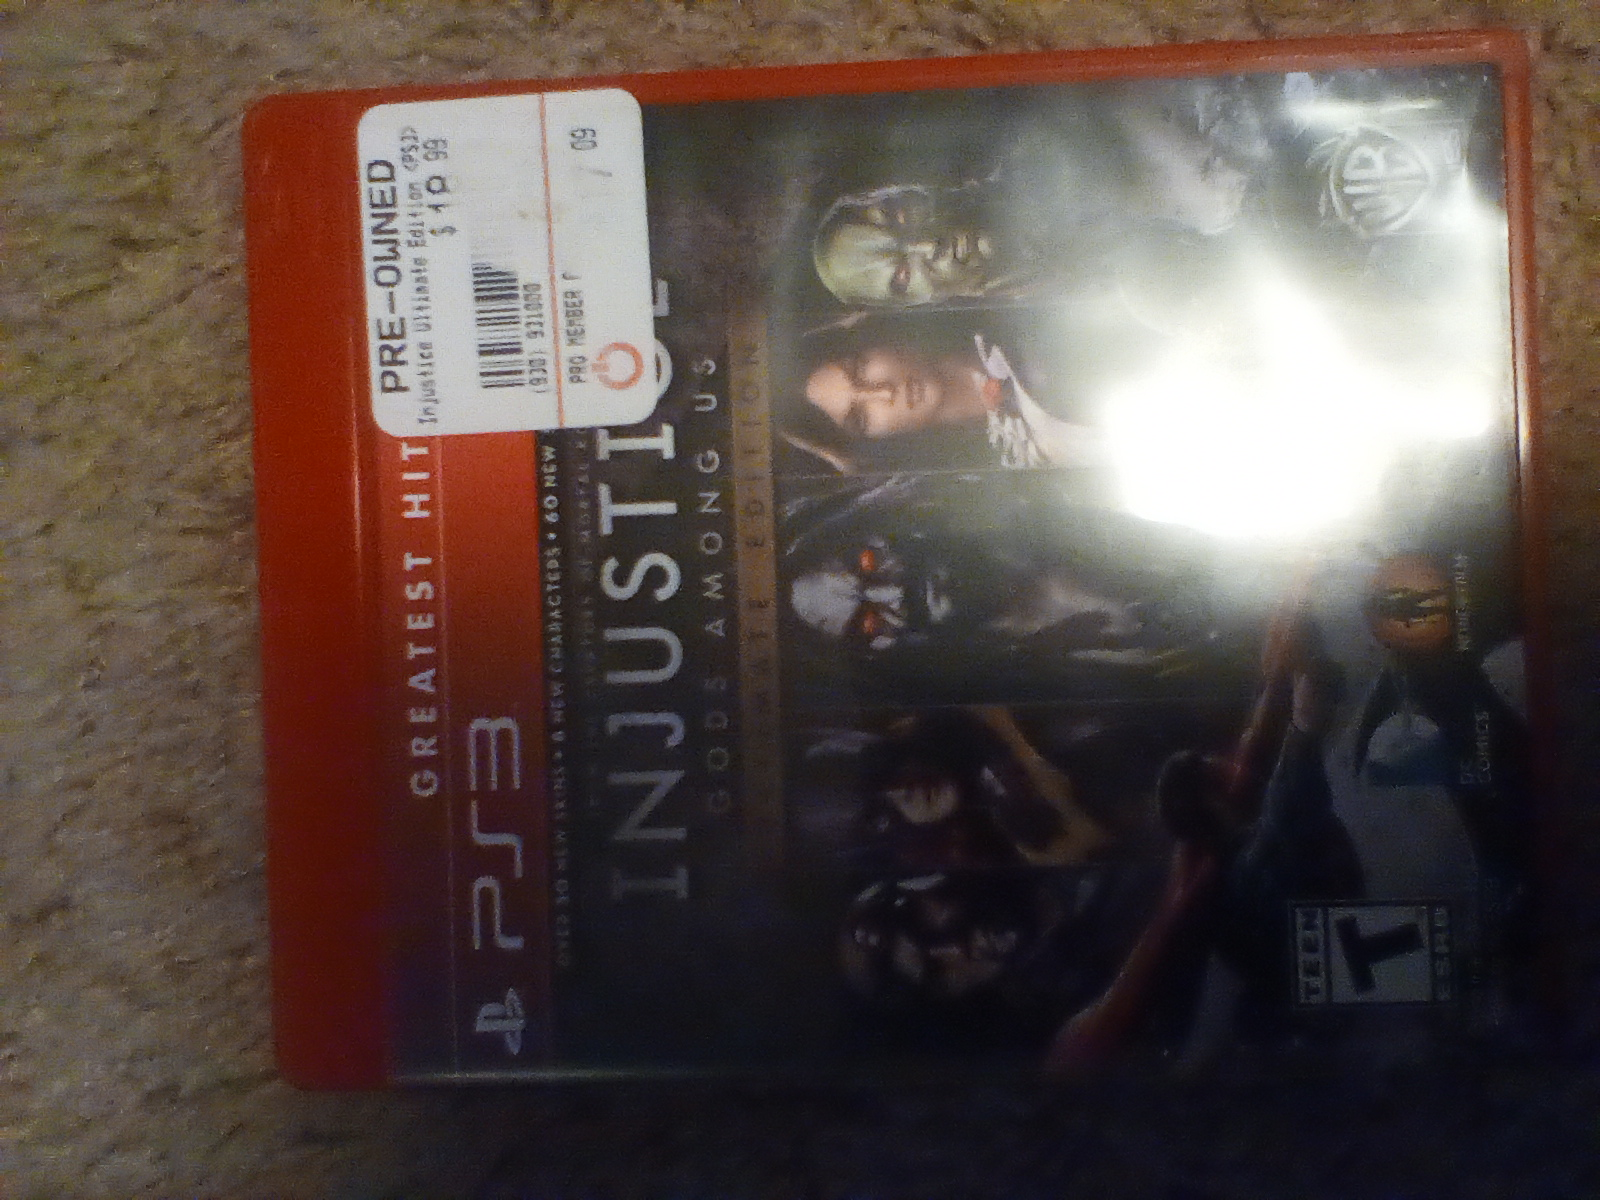 JML101582: Injustice: Gods Among Us: Ultimate Edition [Arcade] (Playstation 3) 500 points on 2020-03-16 21:29:36